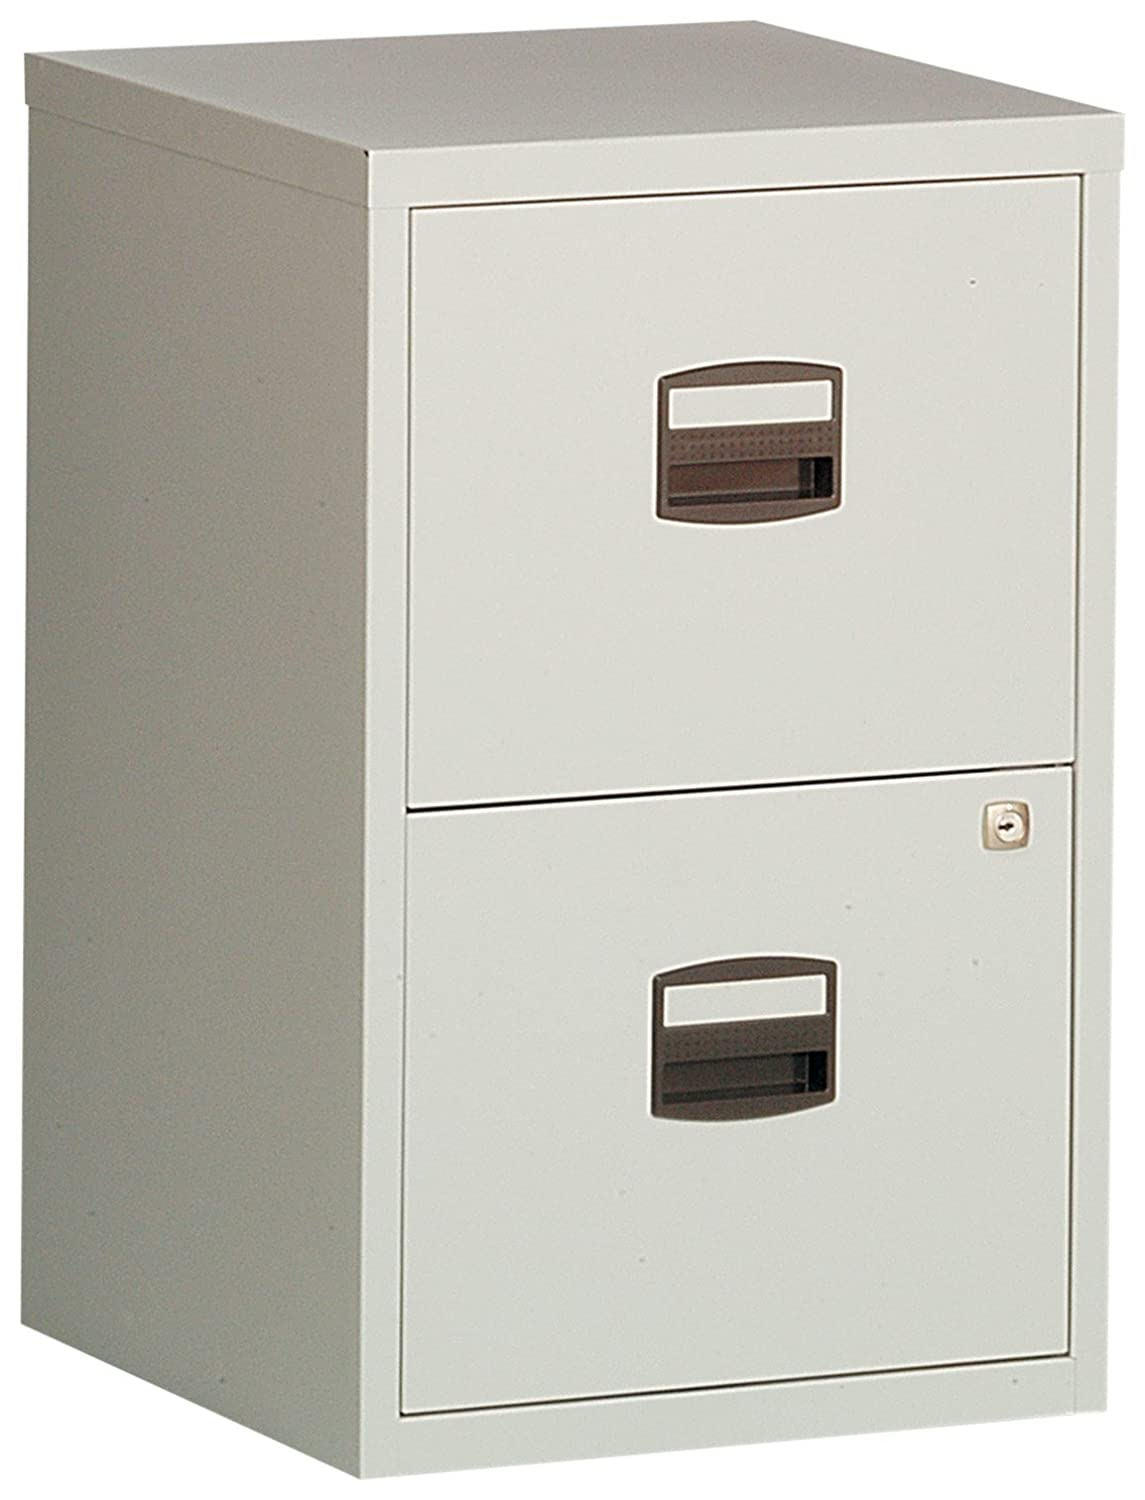 bisley a4 metal filing cabinet chalk white amazoncouk kitchen u0026 home